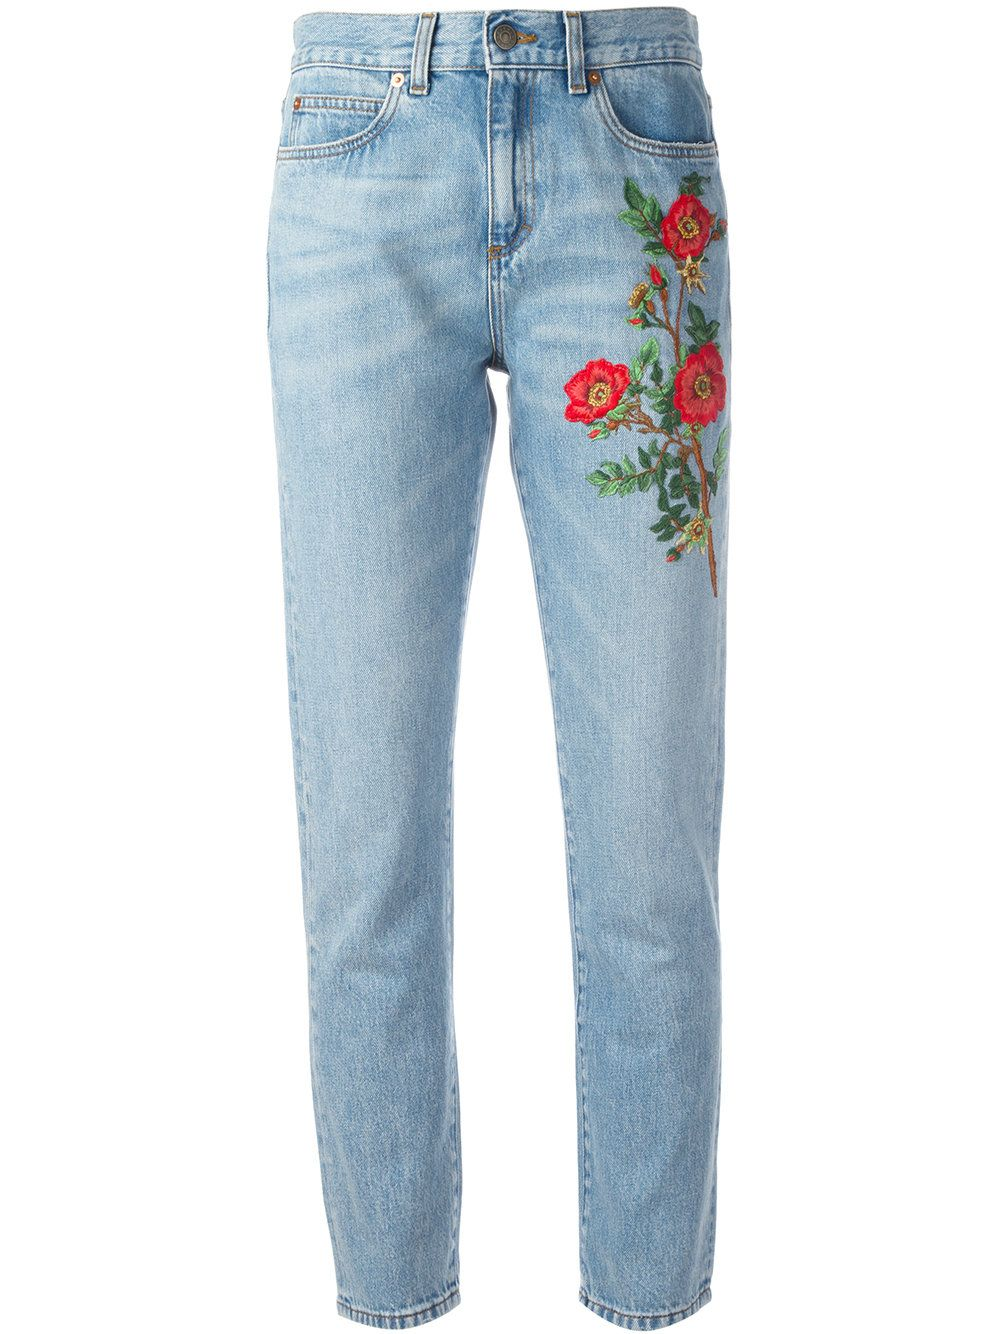 6fe22557fc2 Gucci embroidered flower jeans